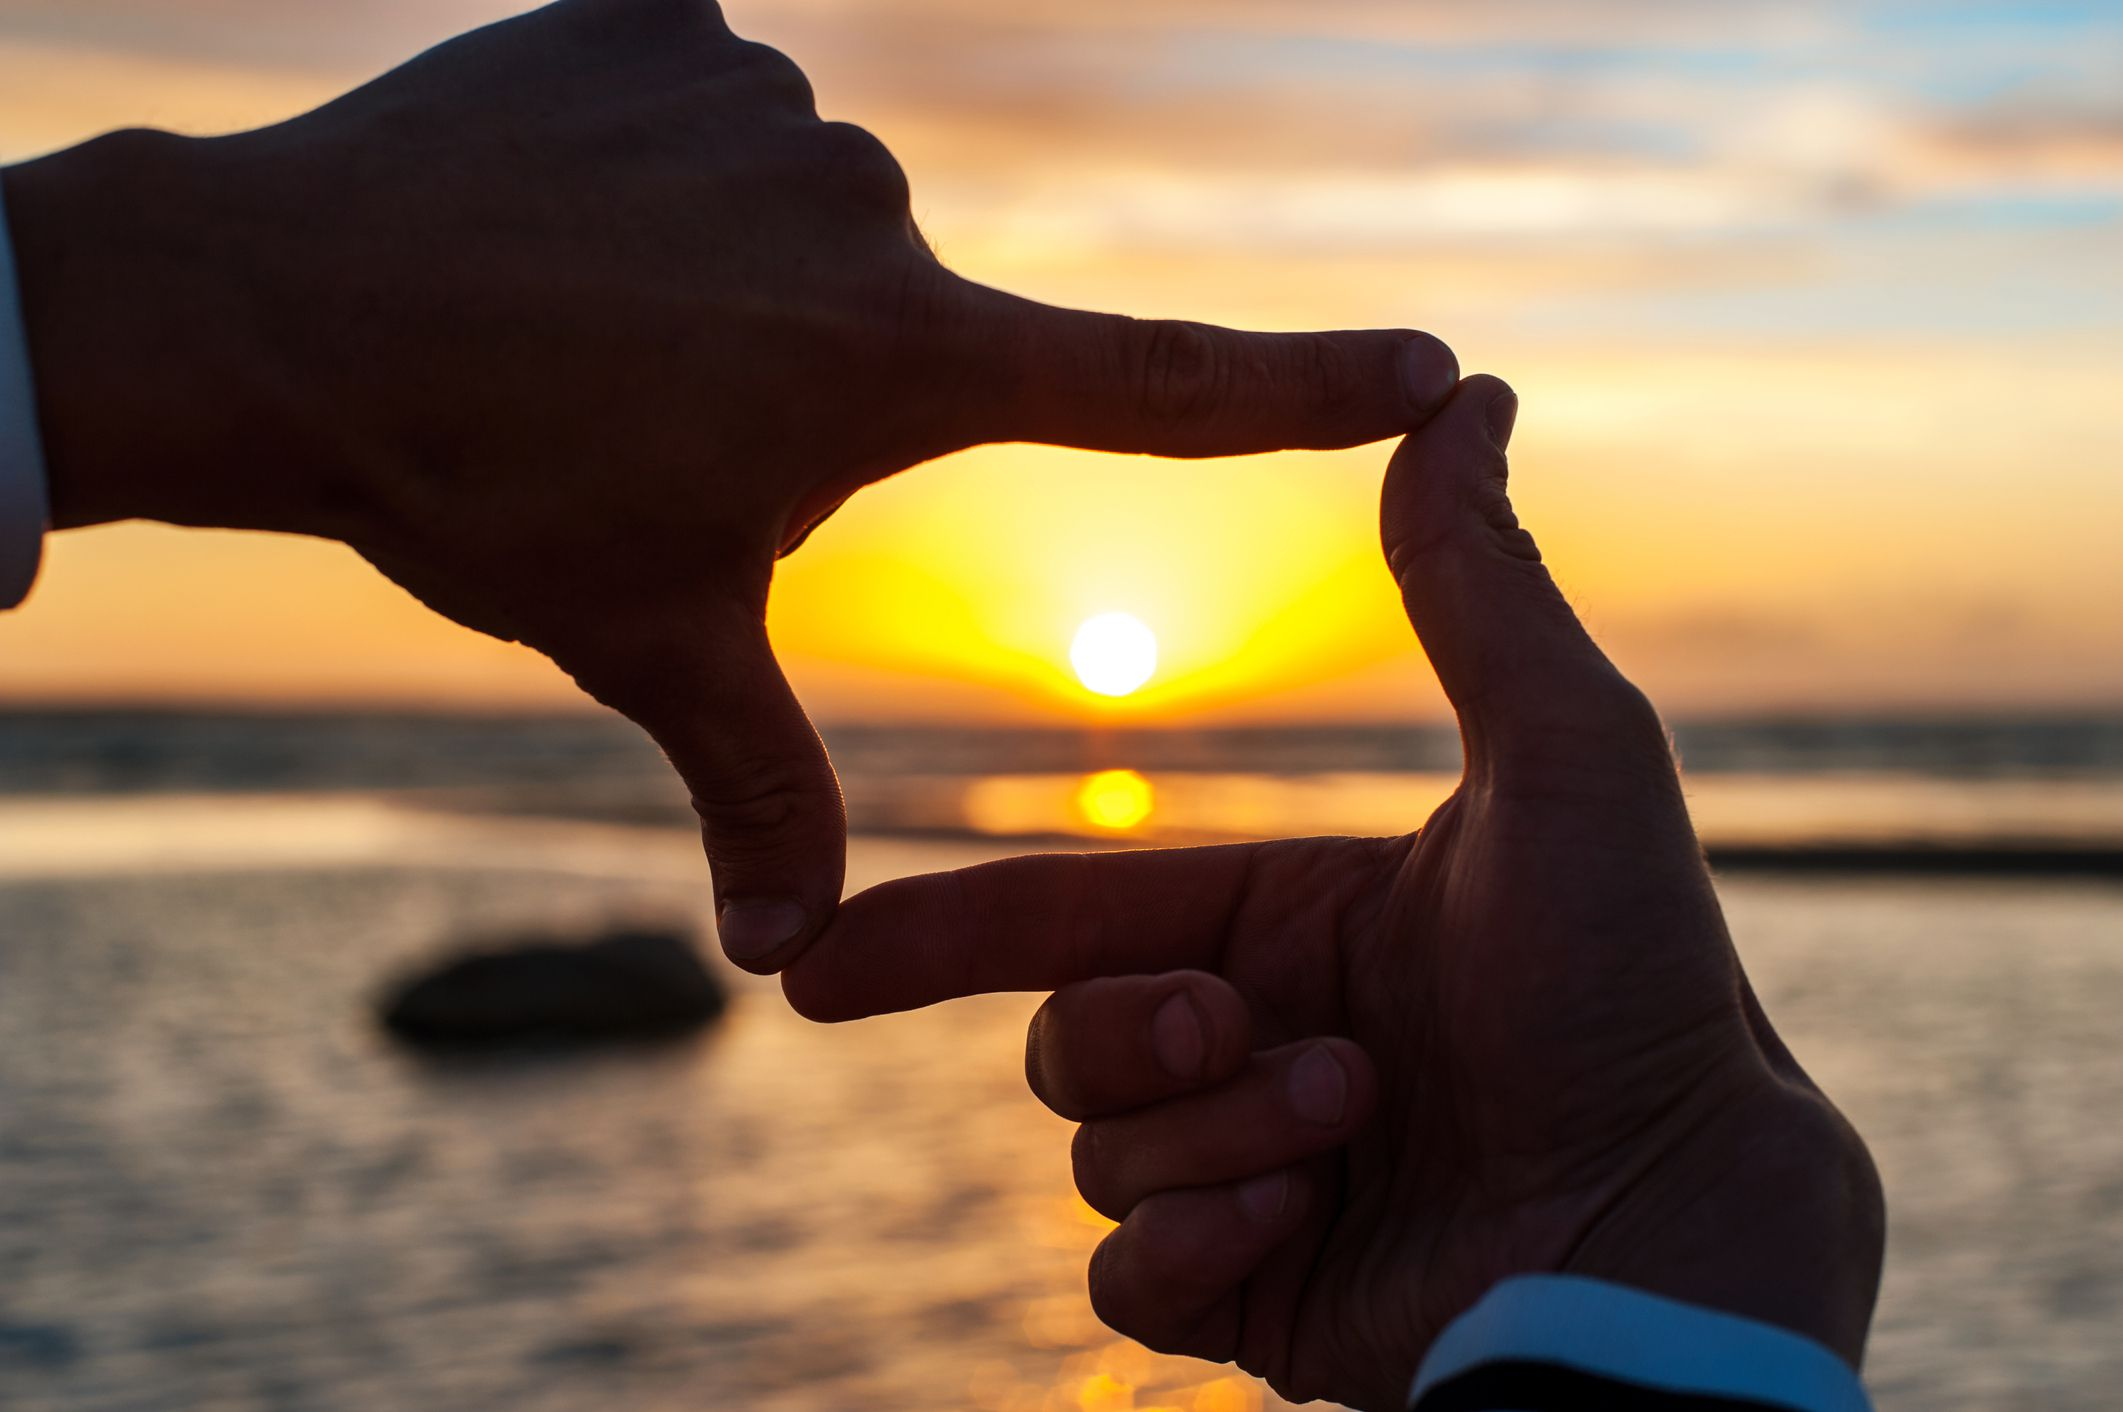 Man looking through fingers at sunset